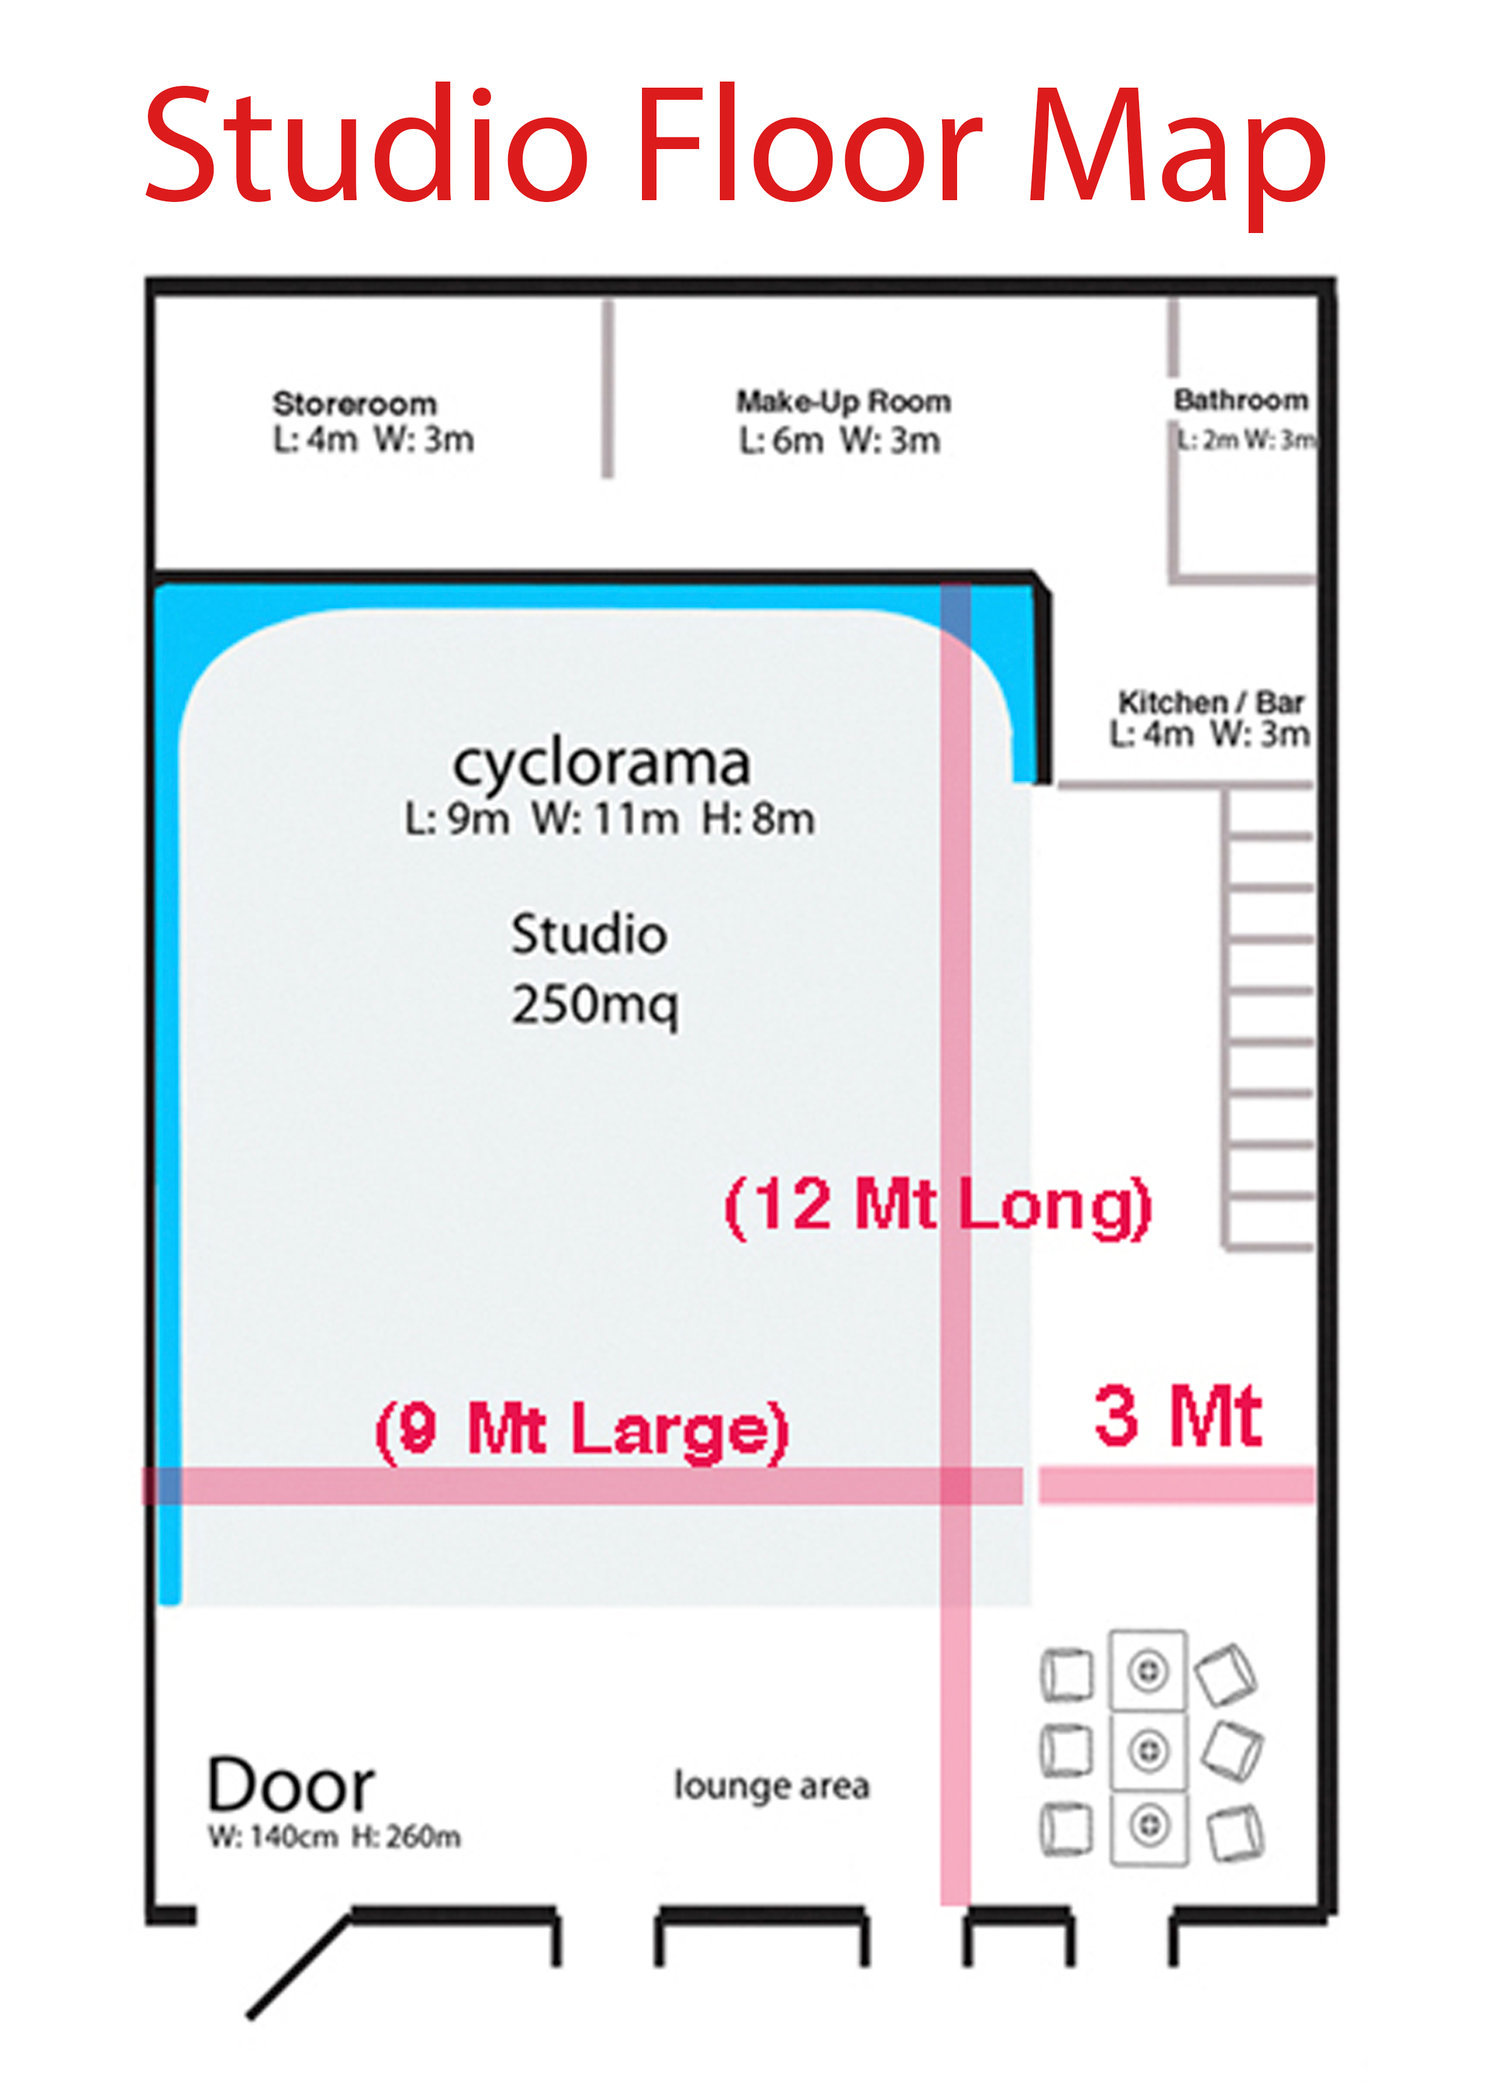 Studio Floor Map.jpg